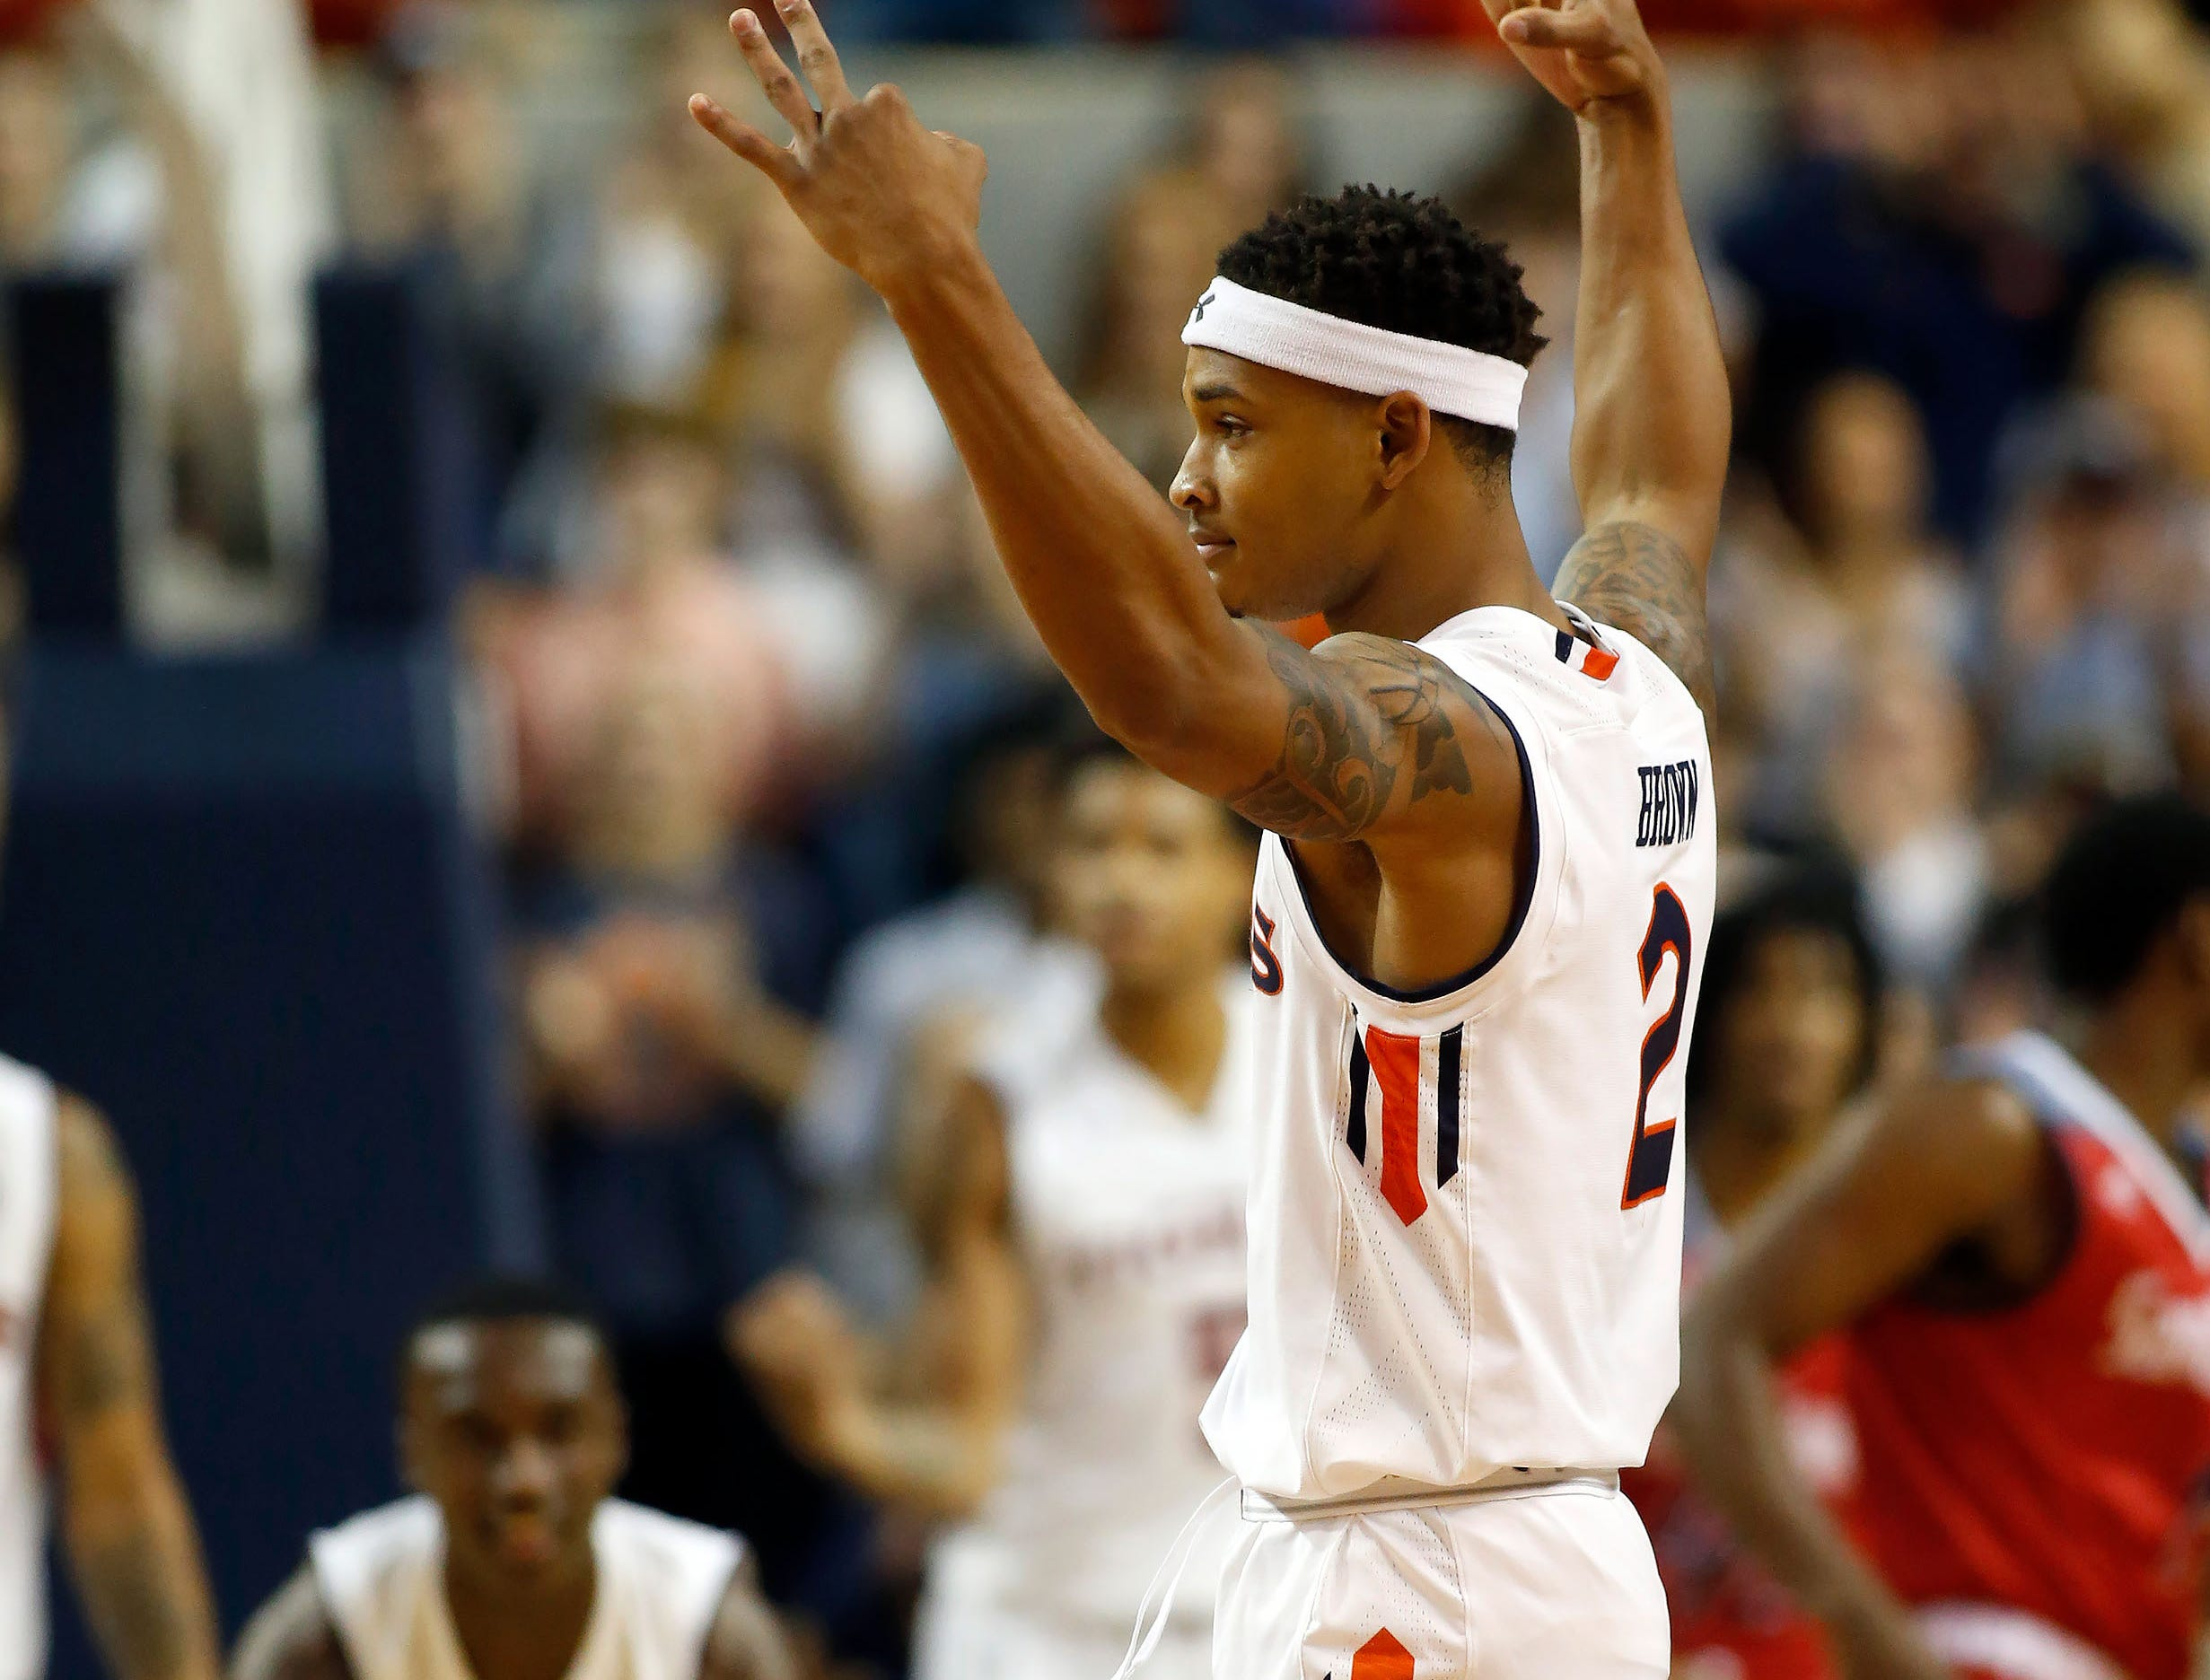 Nov 6, 2018; Auburn, AL, USA; Auburn Tigers guard Bryce Brown (2) reacts after scoring against the South Alabama Jaguars during the first half at Auburn Arena. Mandatory Credit: John Reed-USA TODAY Sports